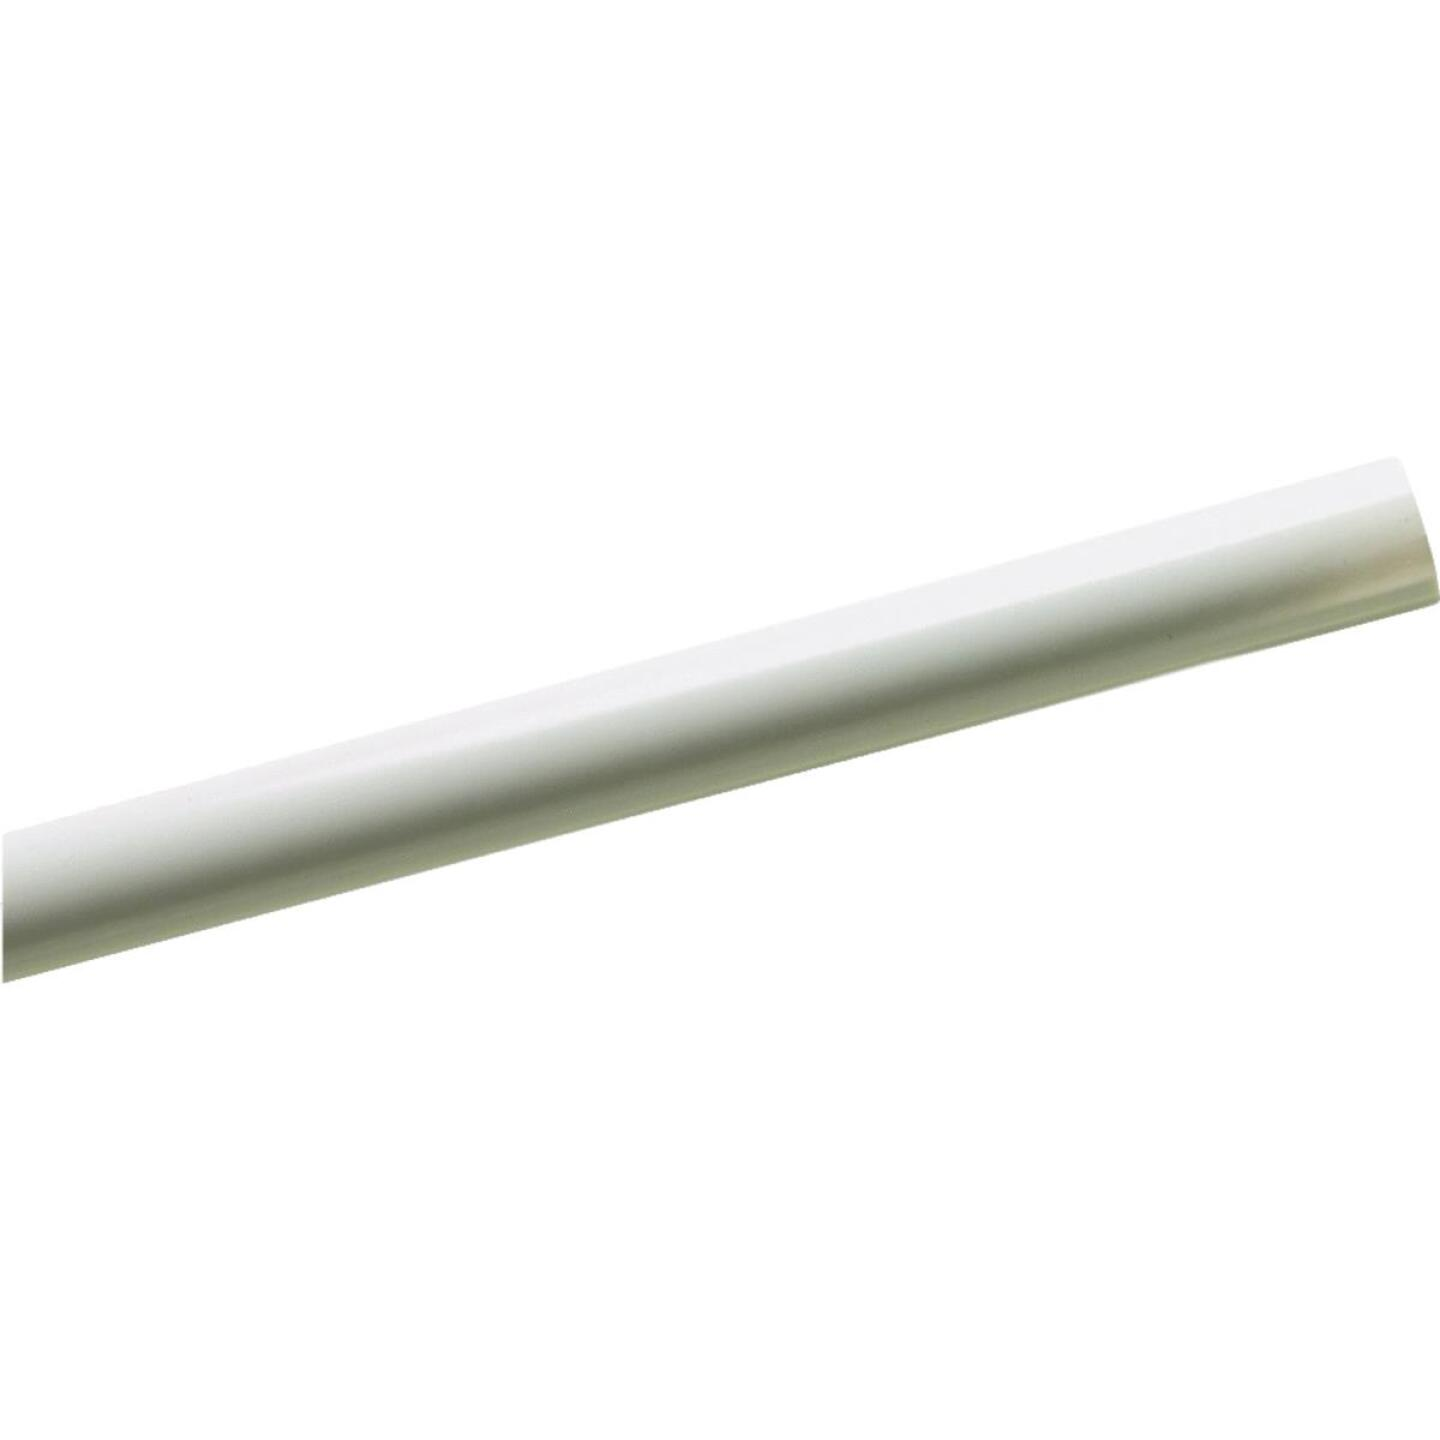 Zenith 60 In. White Shower Rod Cover Image 1